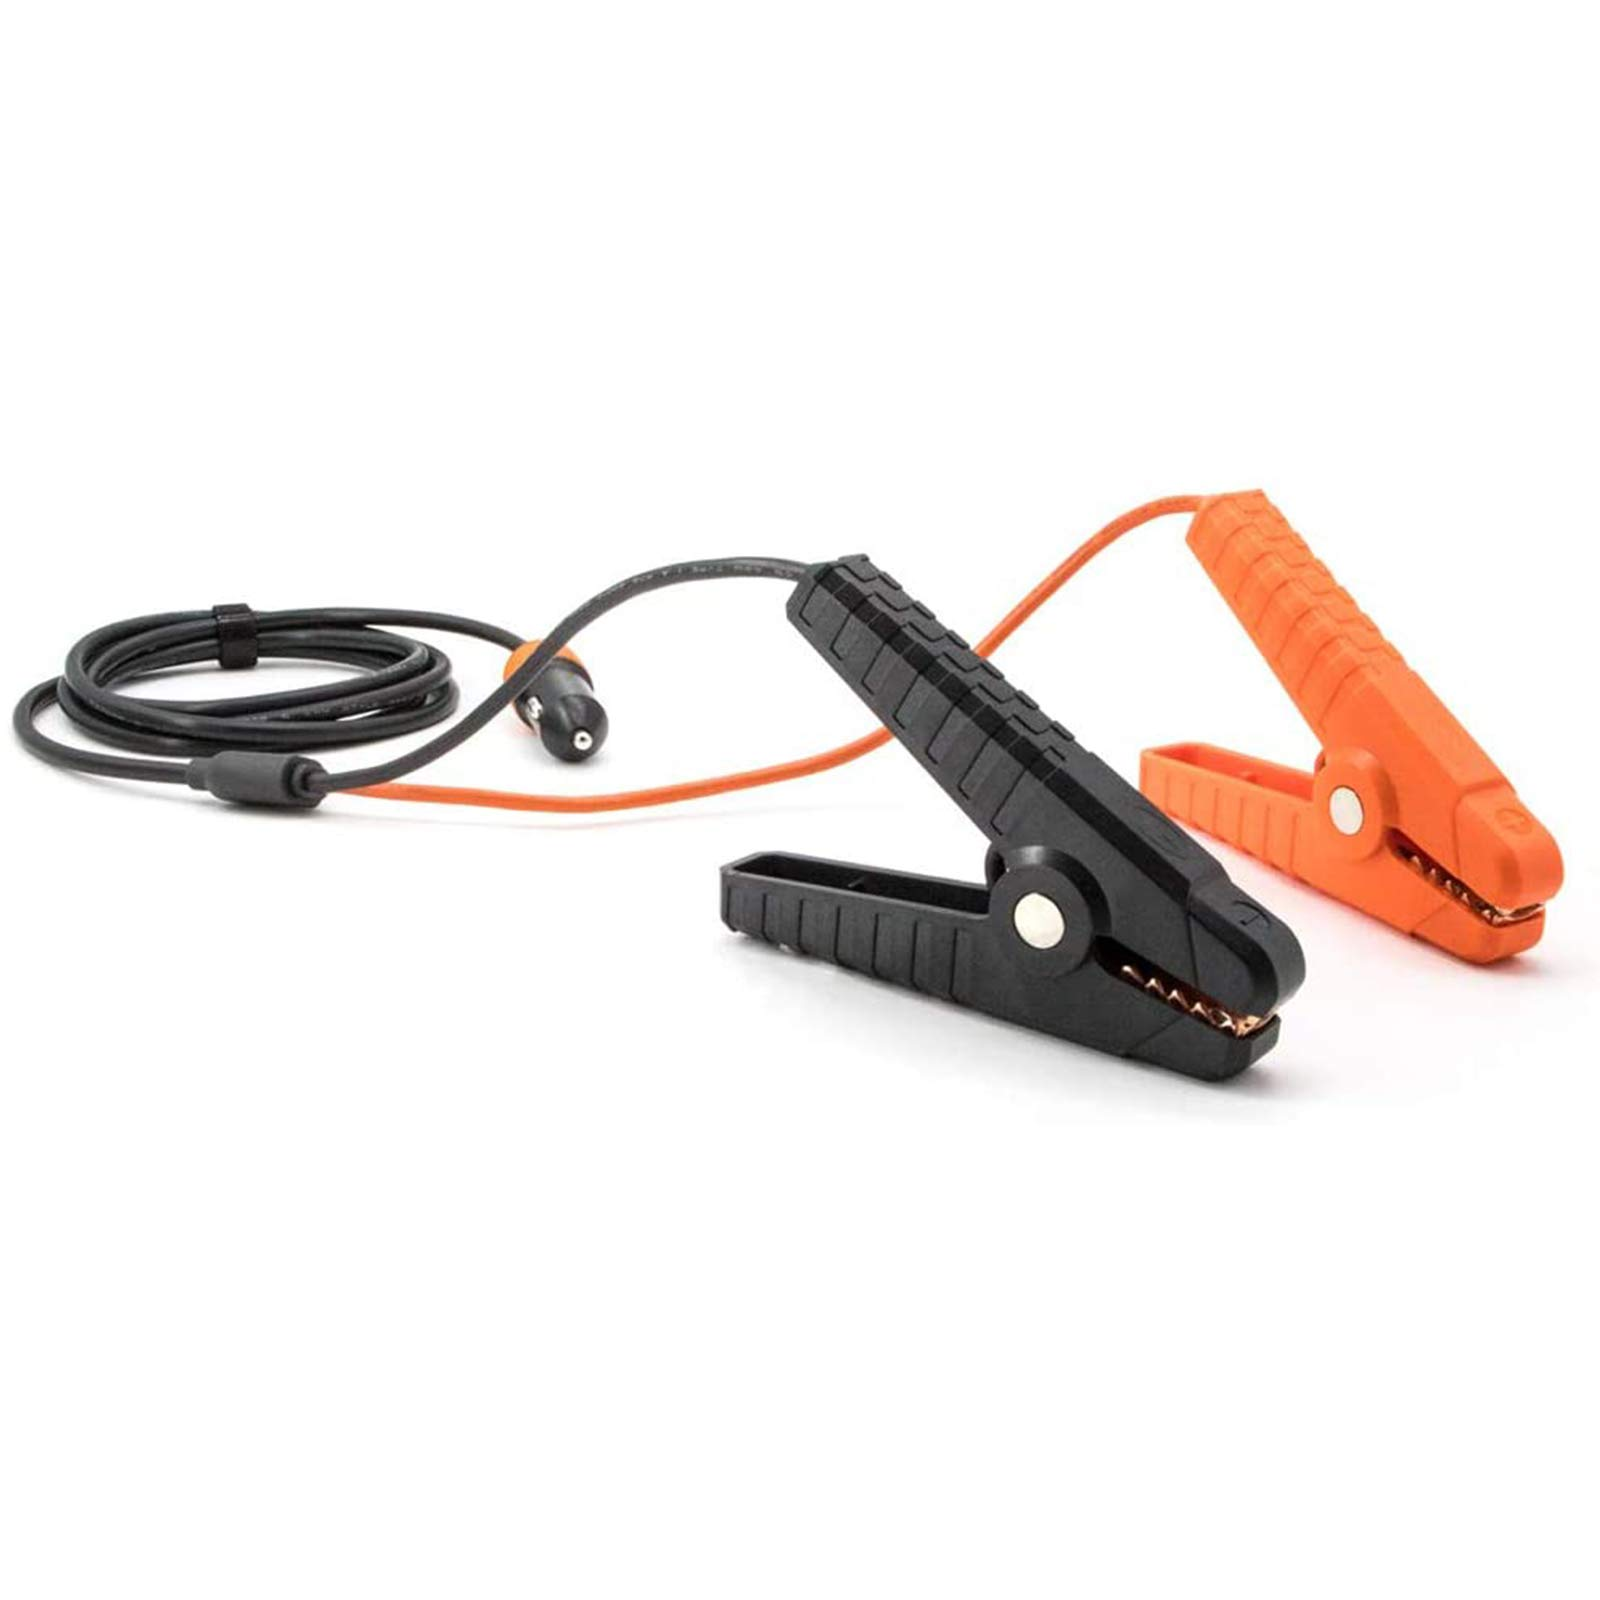 Jackery PowerCable 12V Automobile Lead-Acid Battery Charging Cable, Cigarette Lighter Plug to Alligator Battery Clamps for Car Battery, Compatible with Solar Generator Explorer 1000/500/300/240